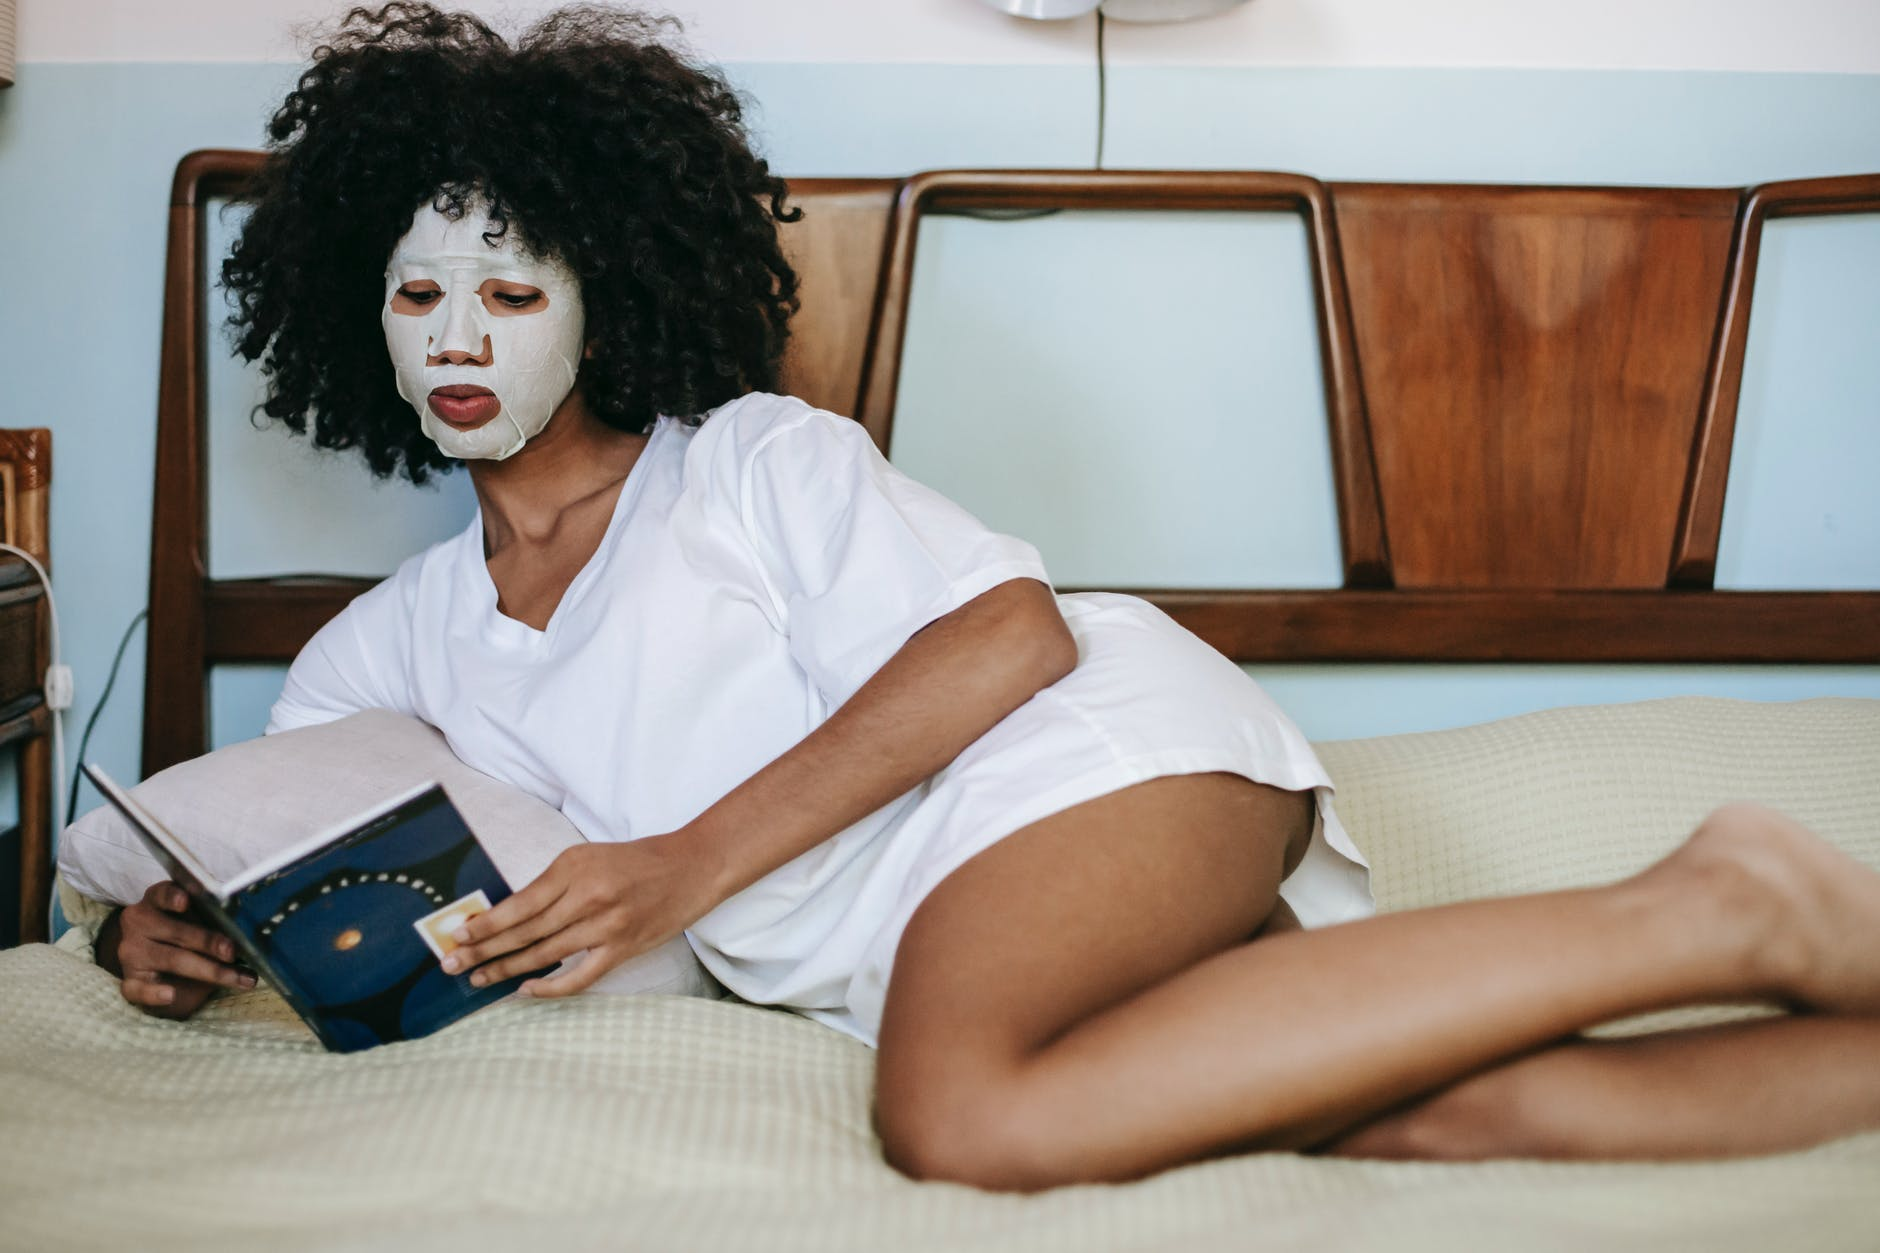 young woman lying on bed and reading book with cosmetic mask on face